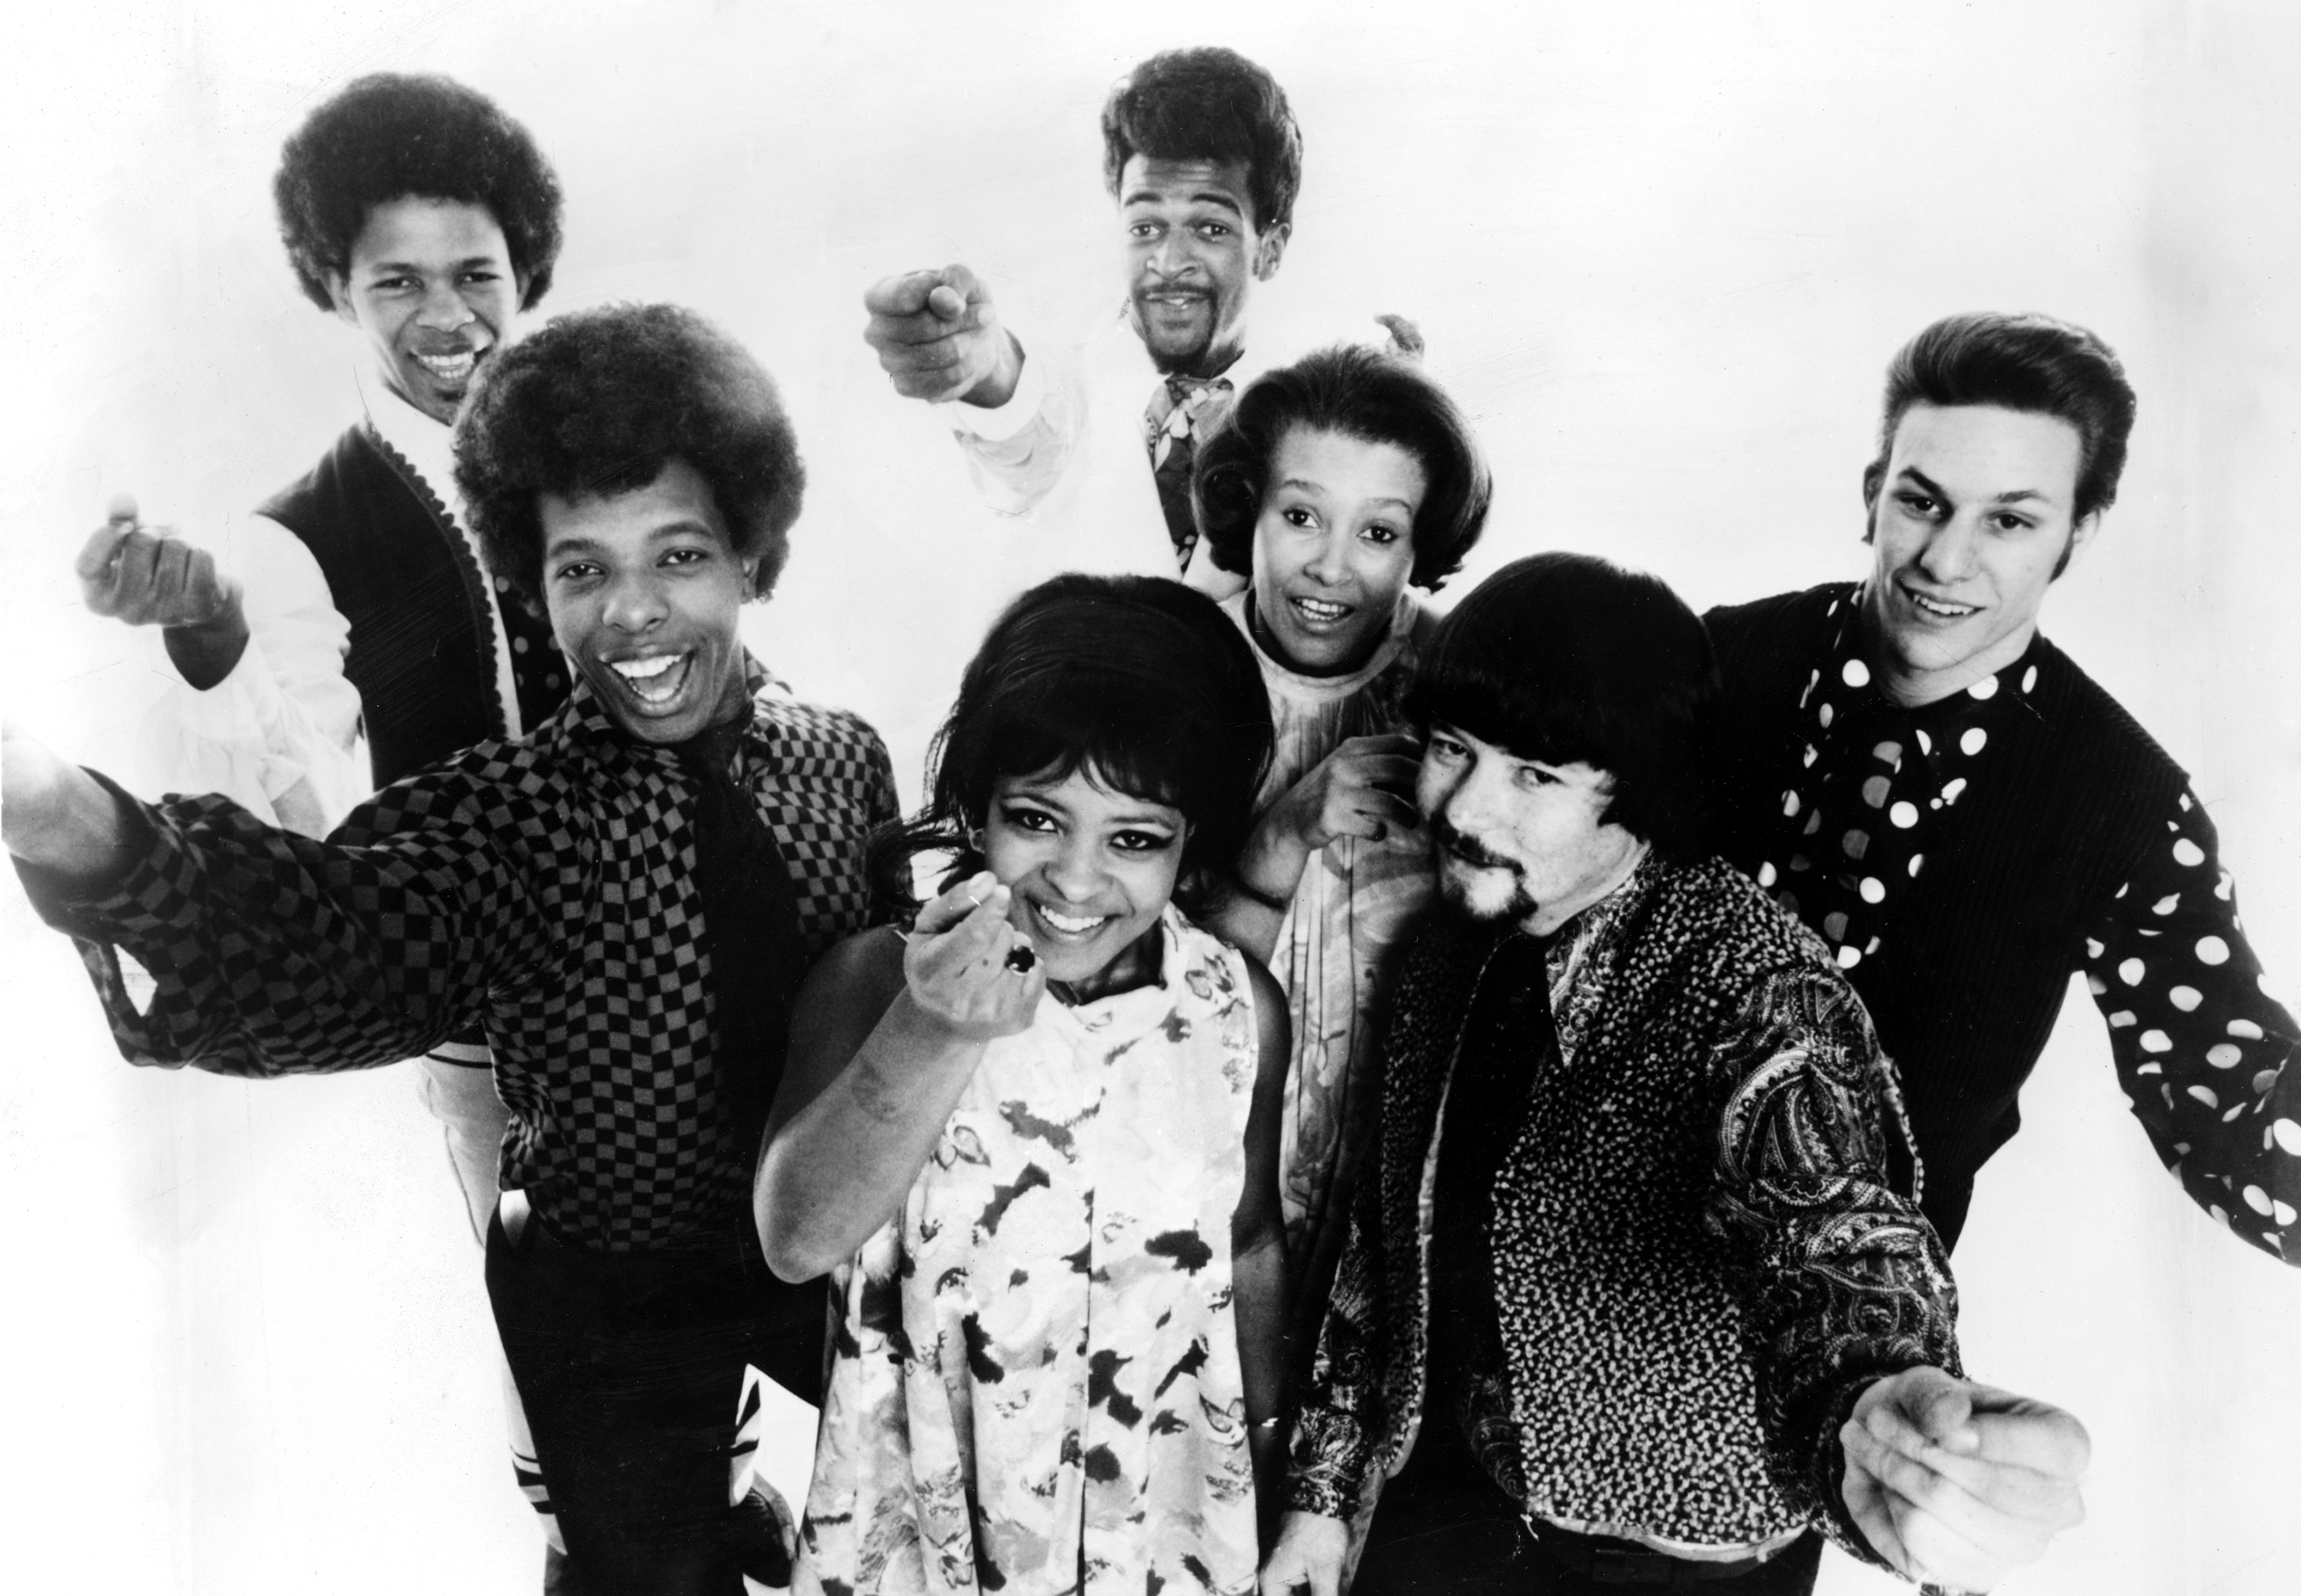 SLY AND THE FAMILY STONE, c. 1968. Keine Weitergabe an Drittverwerter.